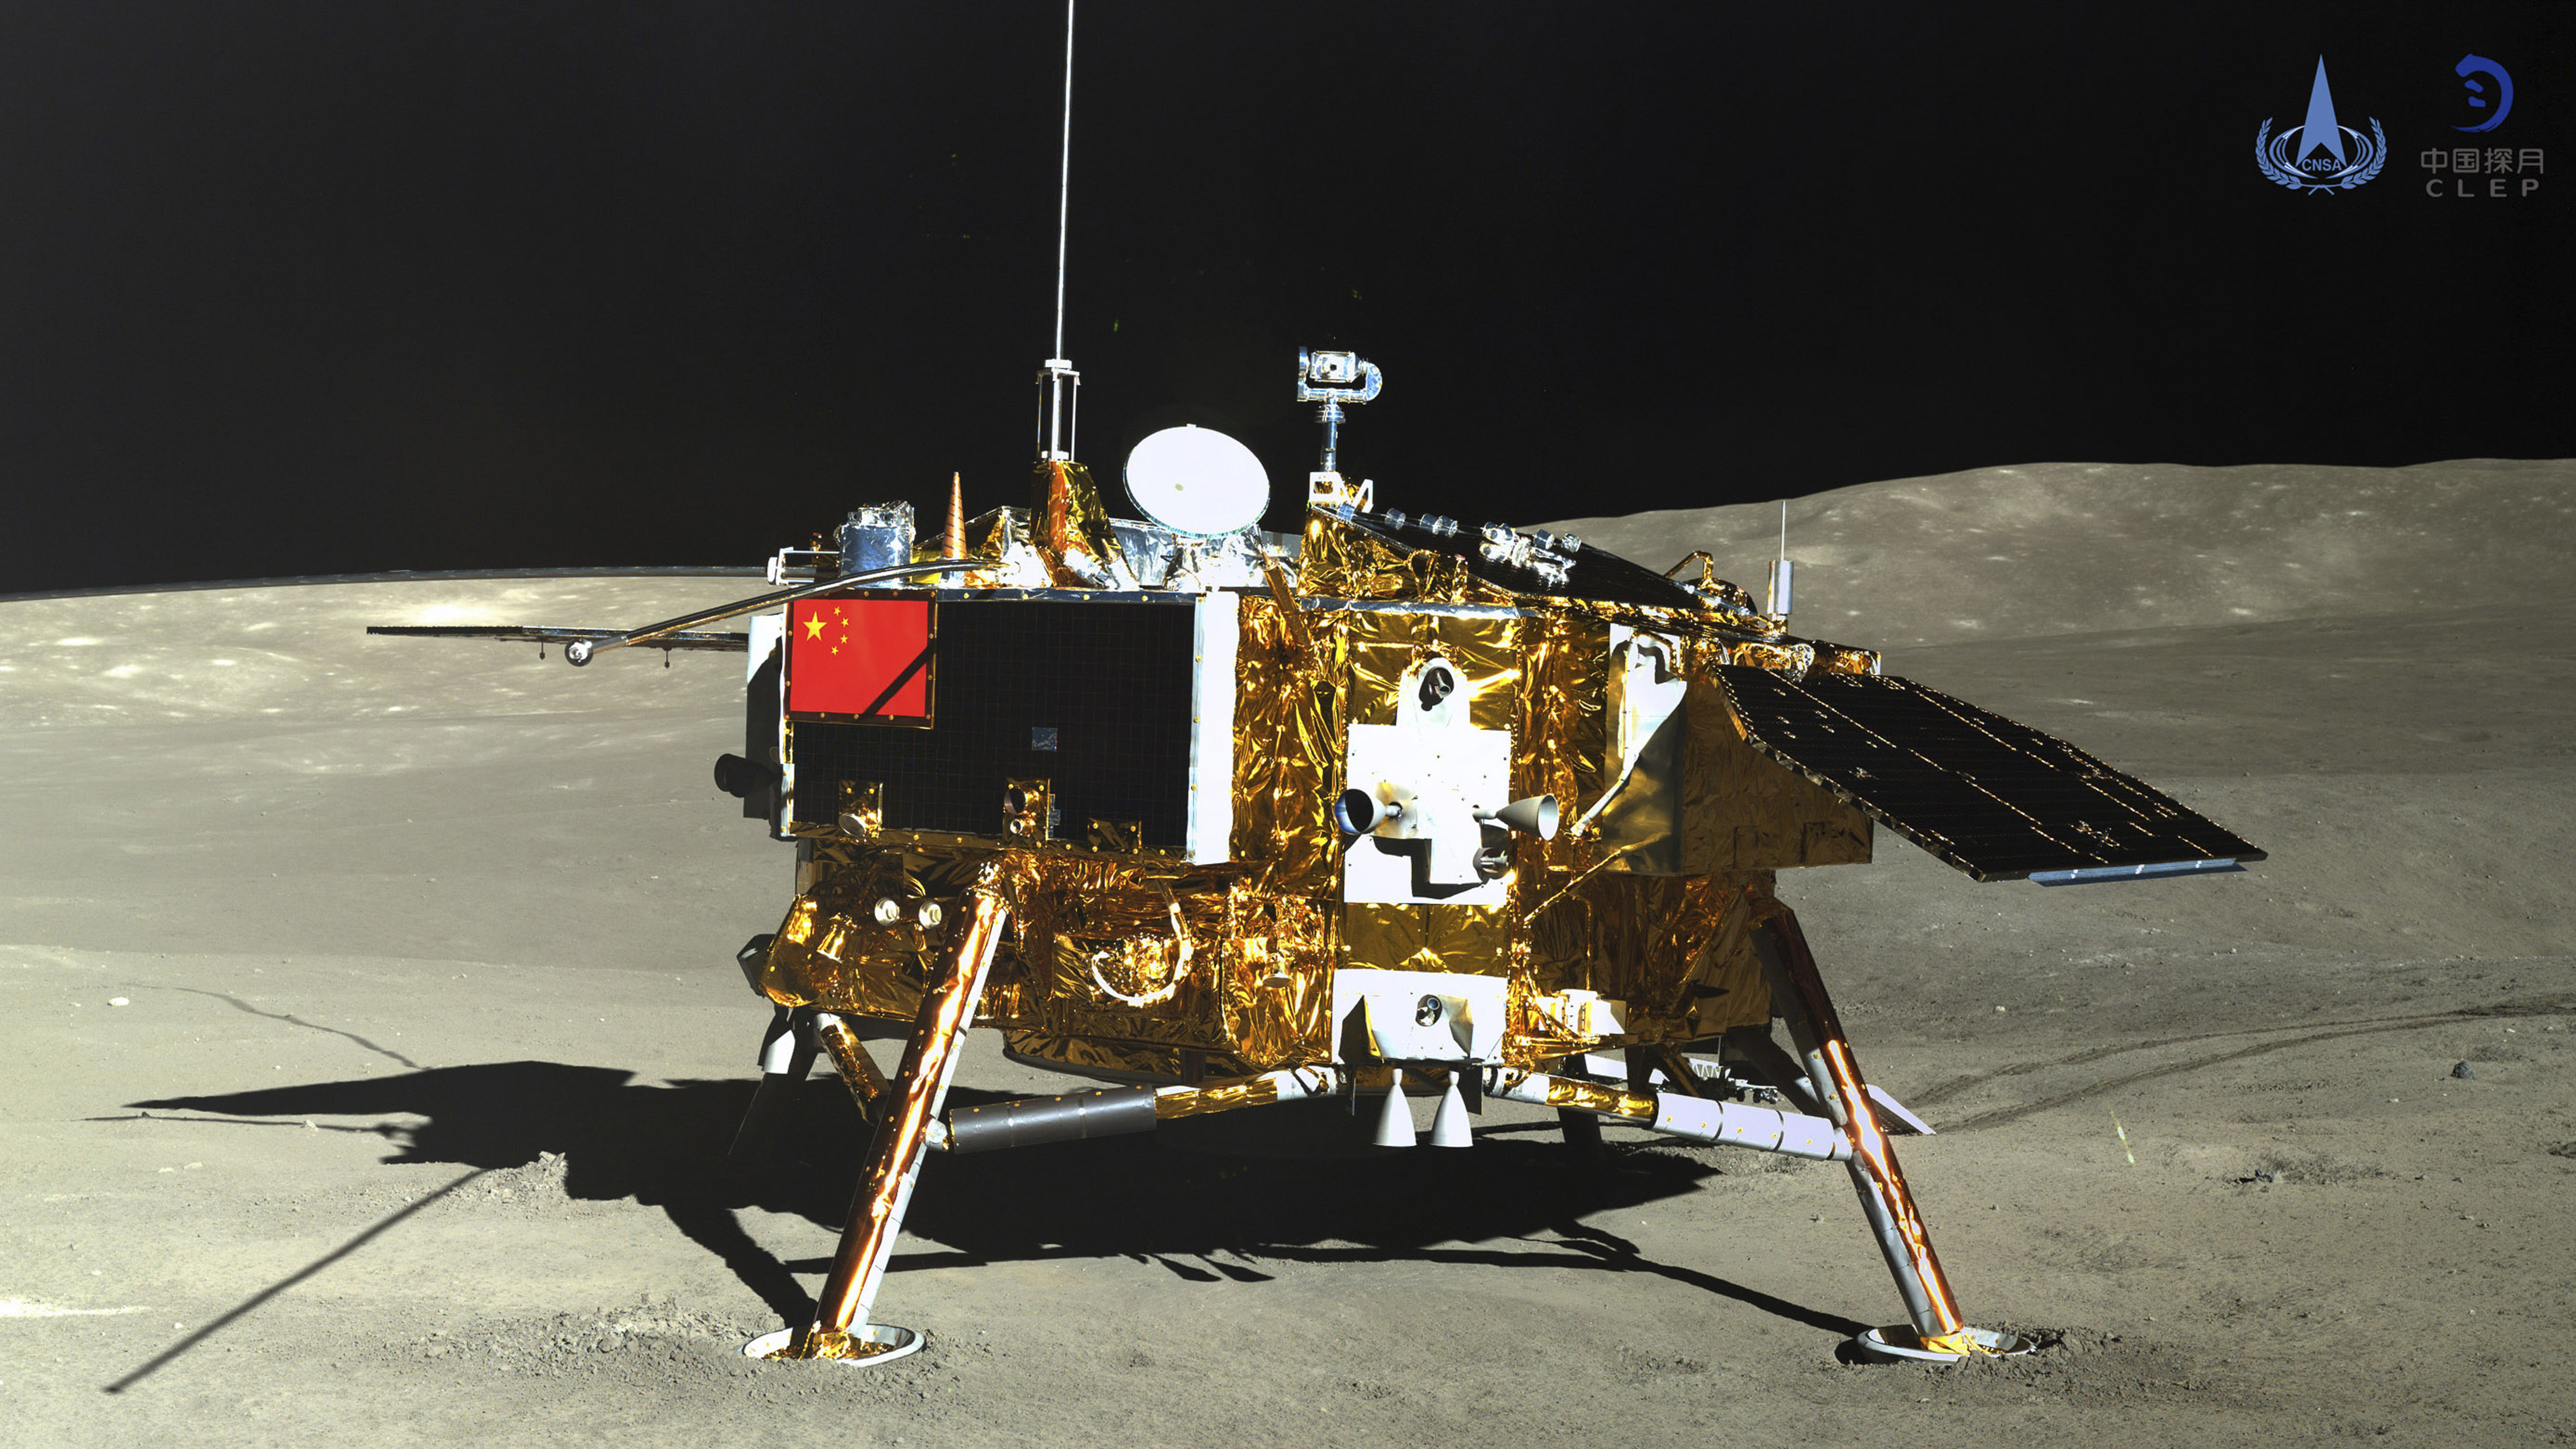 Cotton Seed Sprouts In China's Lunar Lander